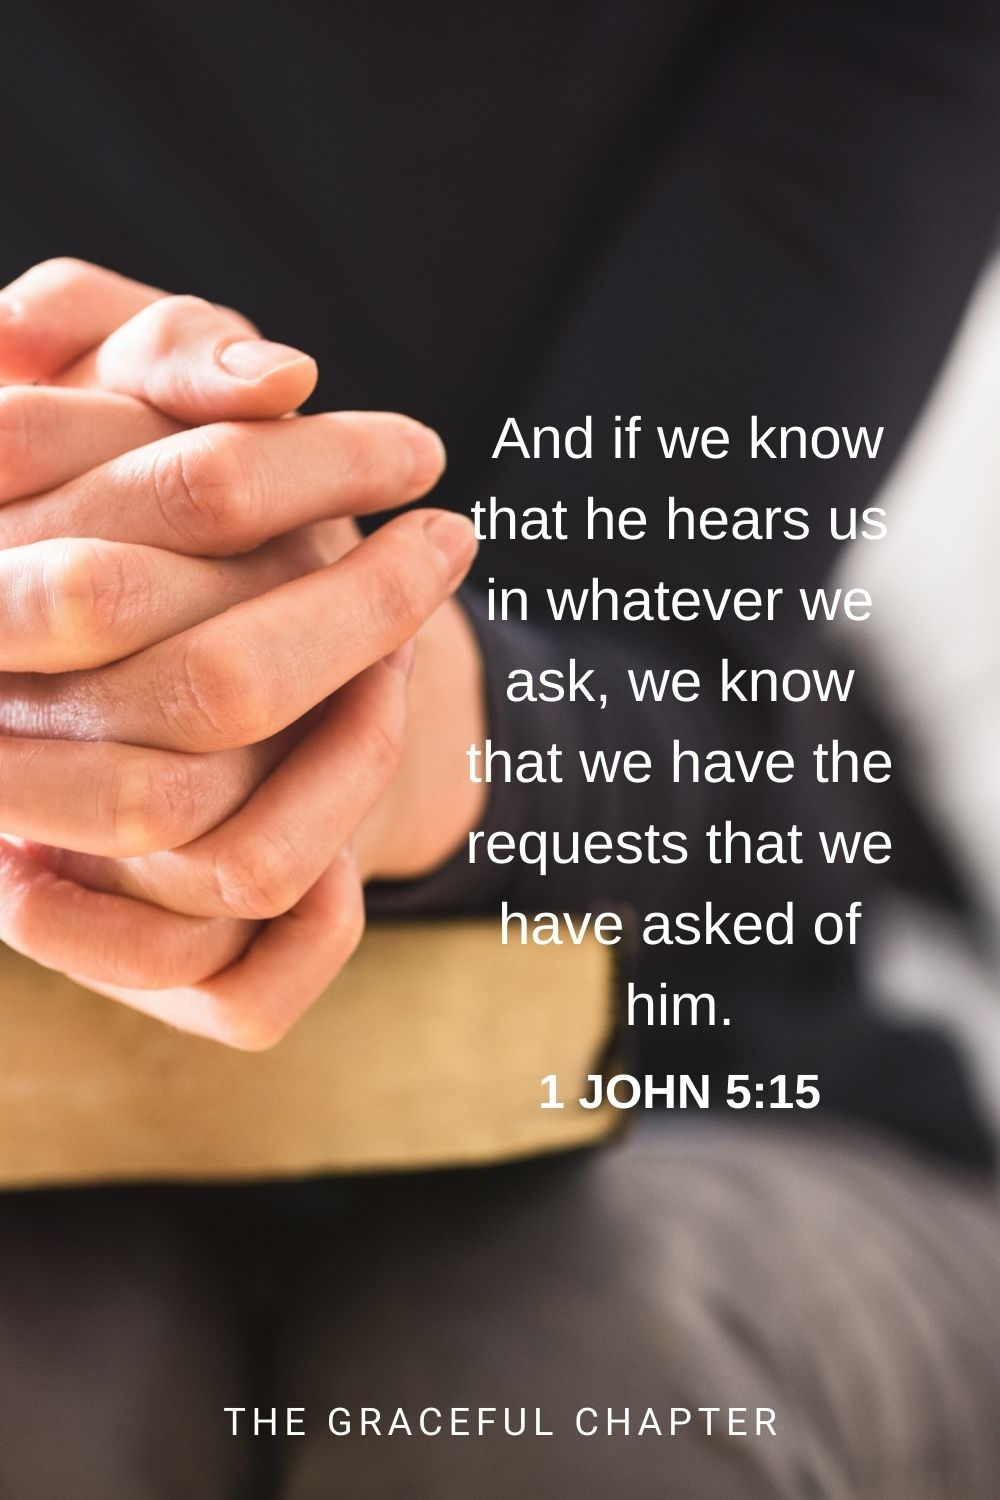 And if we know that he hears us in whatever we ask, we know that we have the requests that we have asked of him. 1 John 5:15